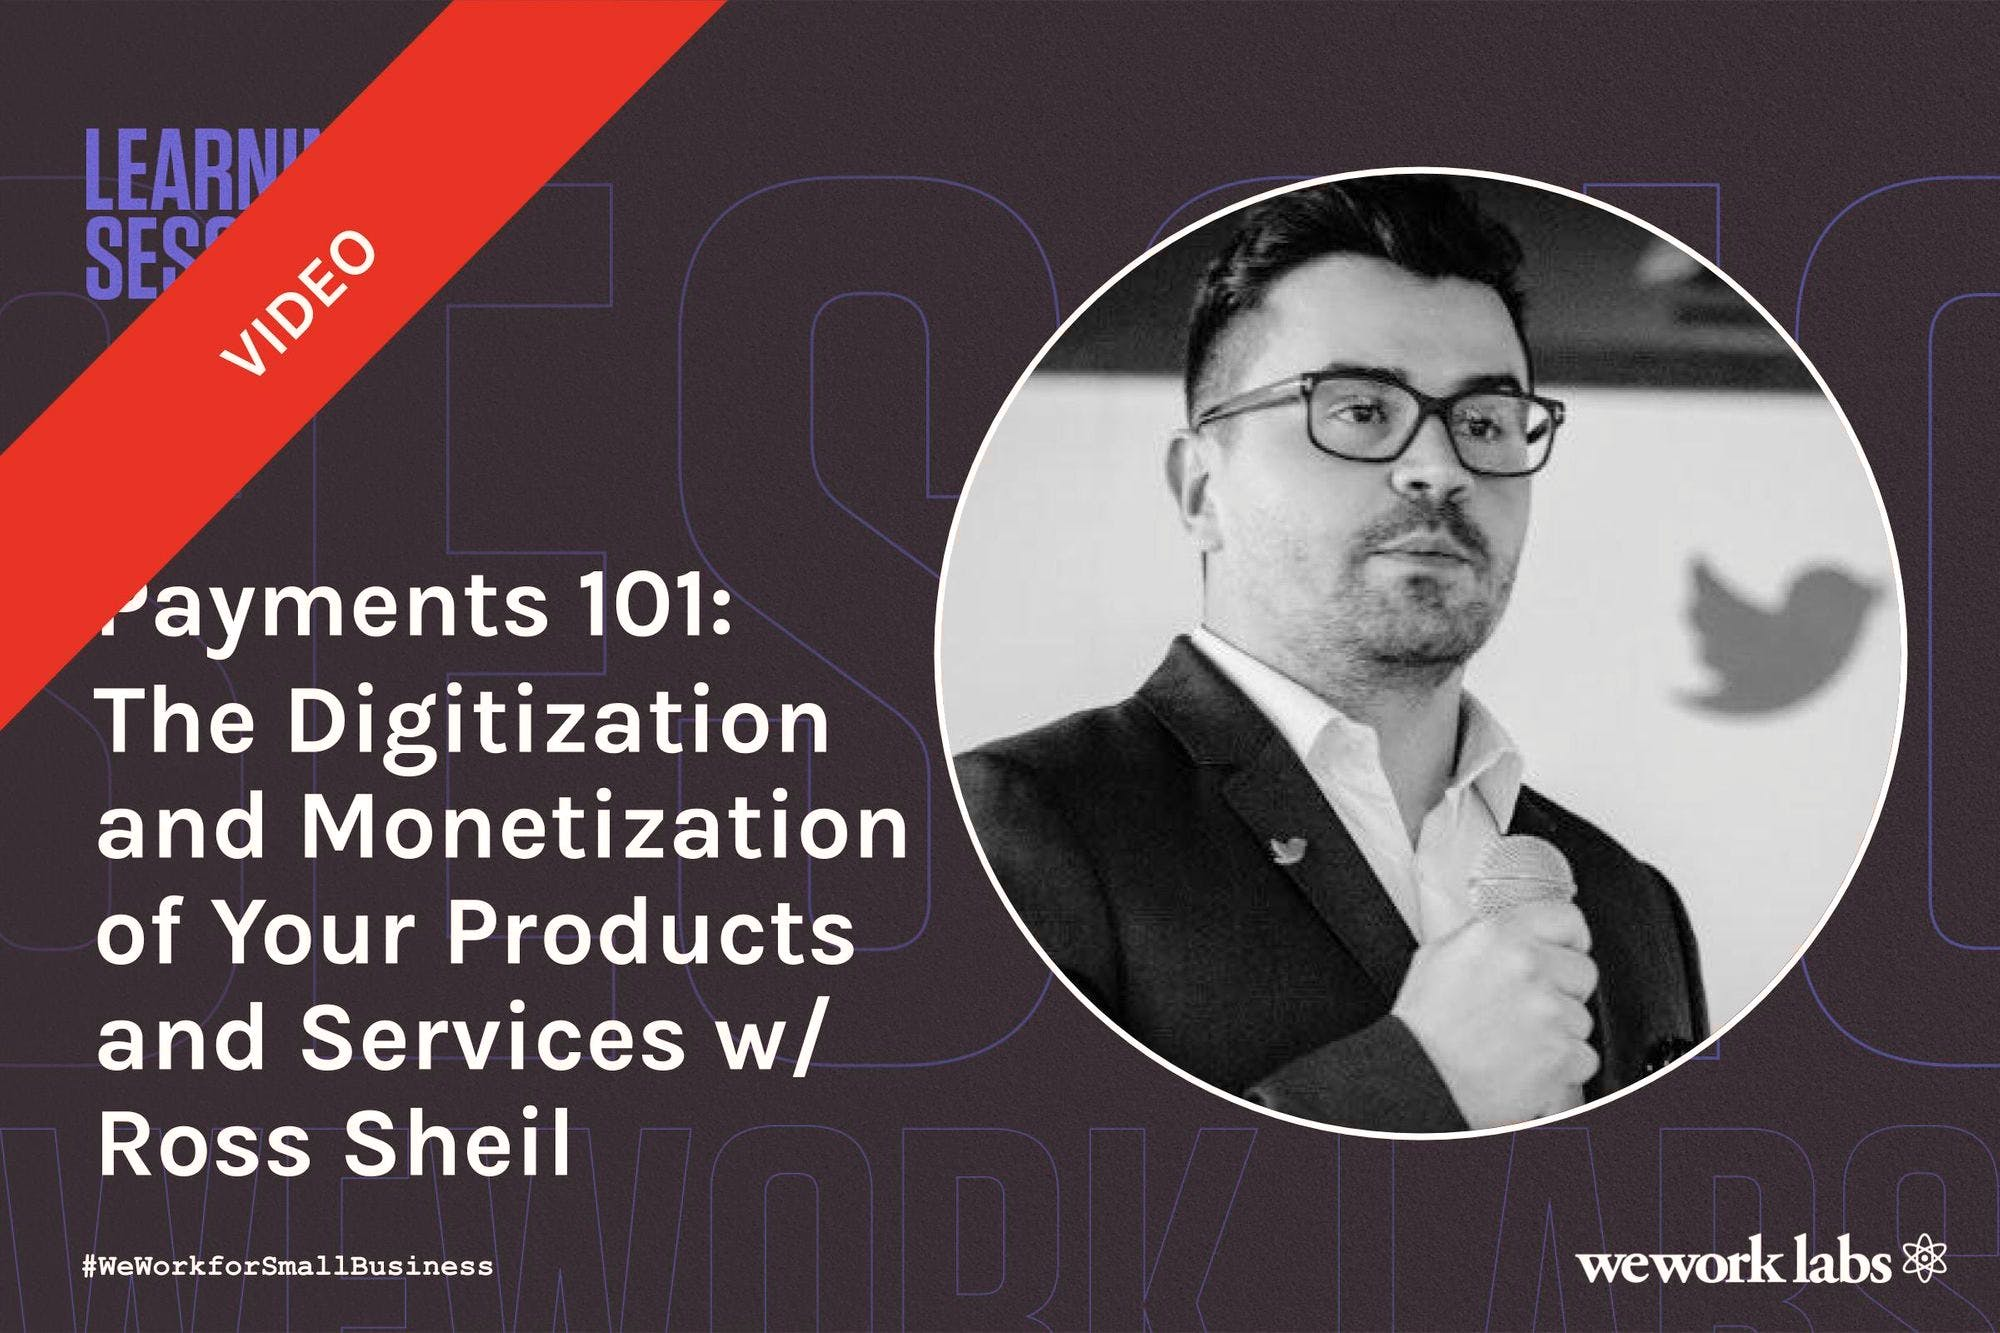 Payments 101: The Digitization and Monetization of Your Products and Services